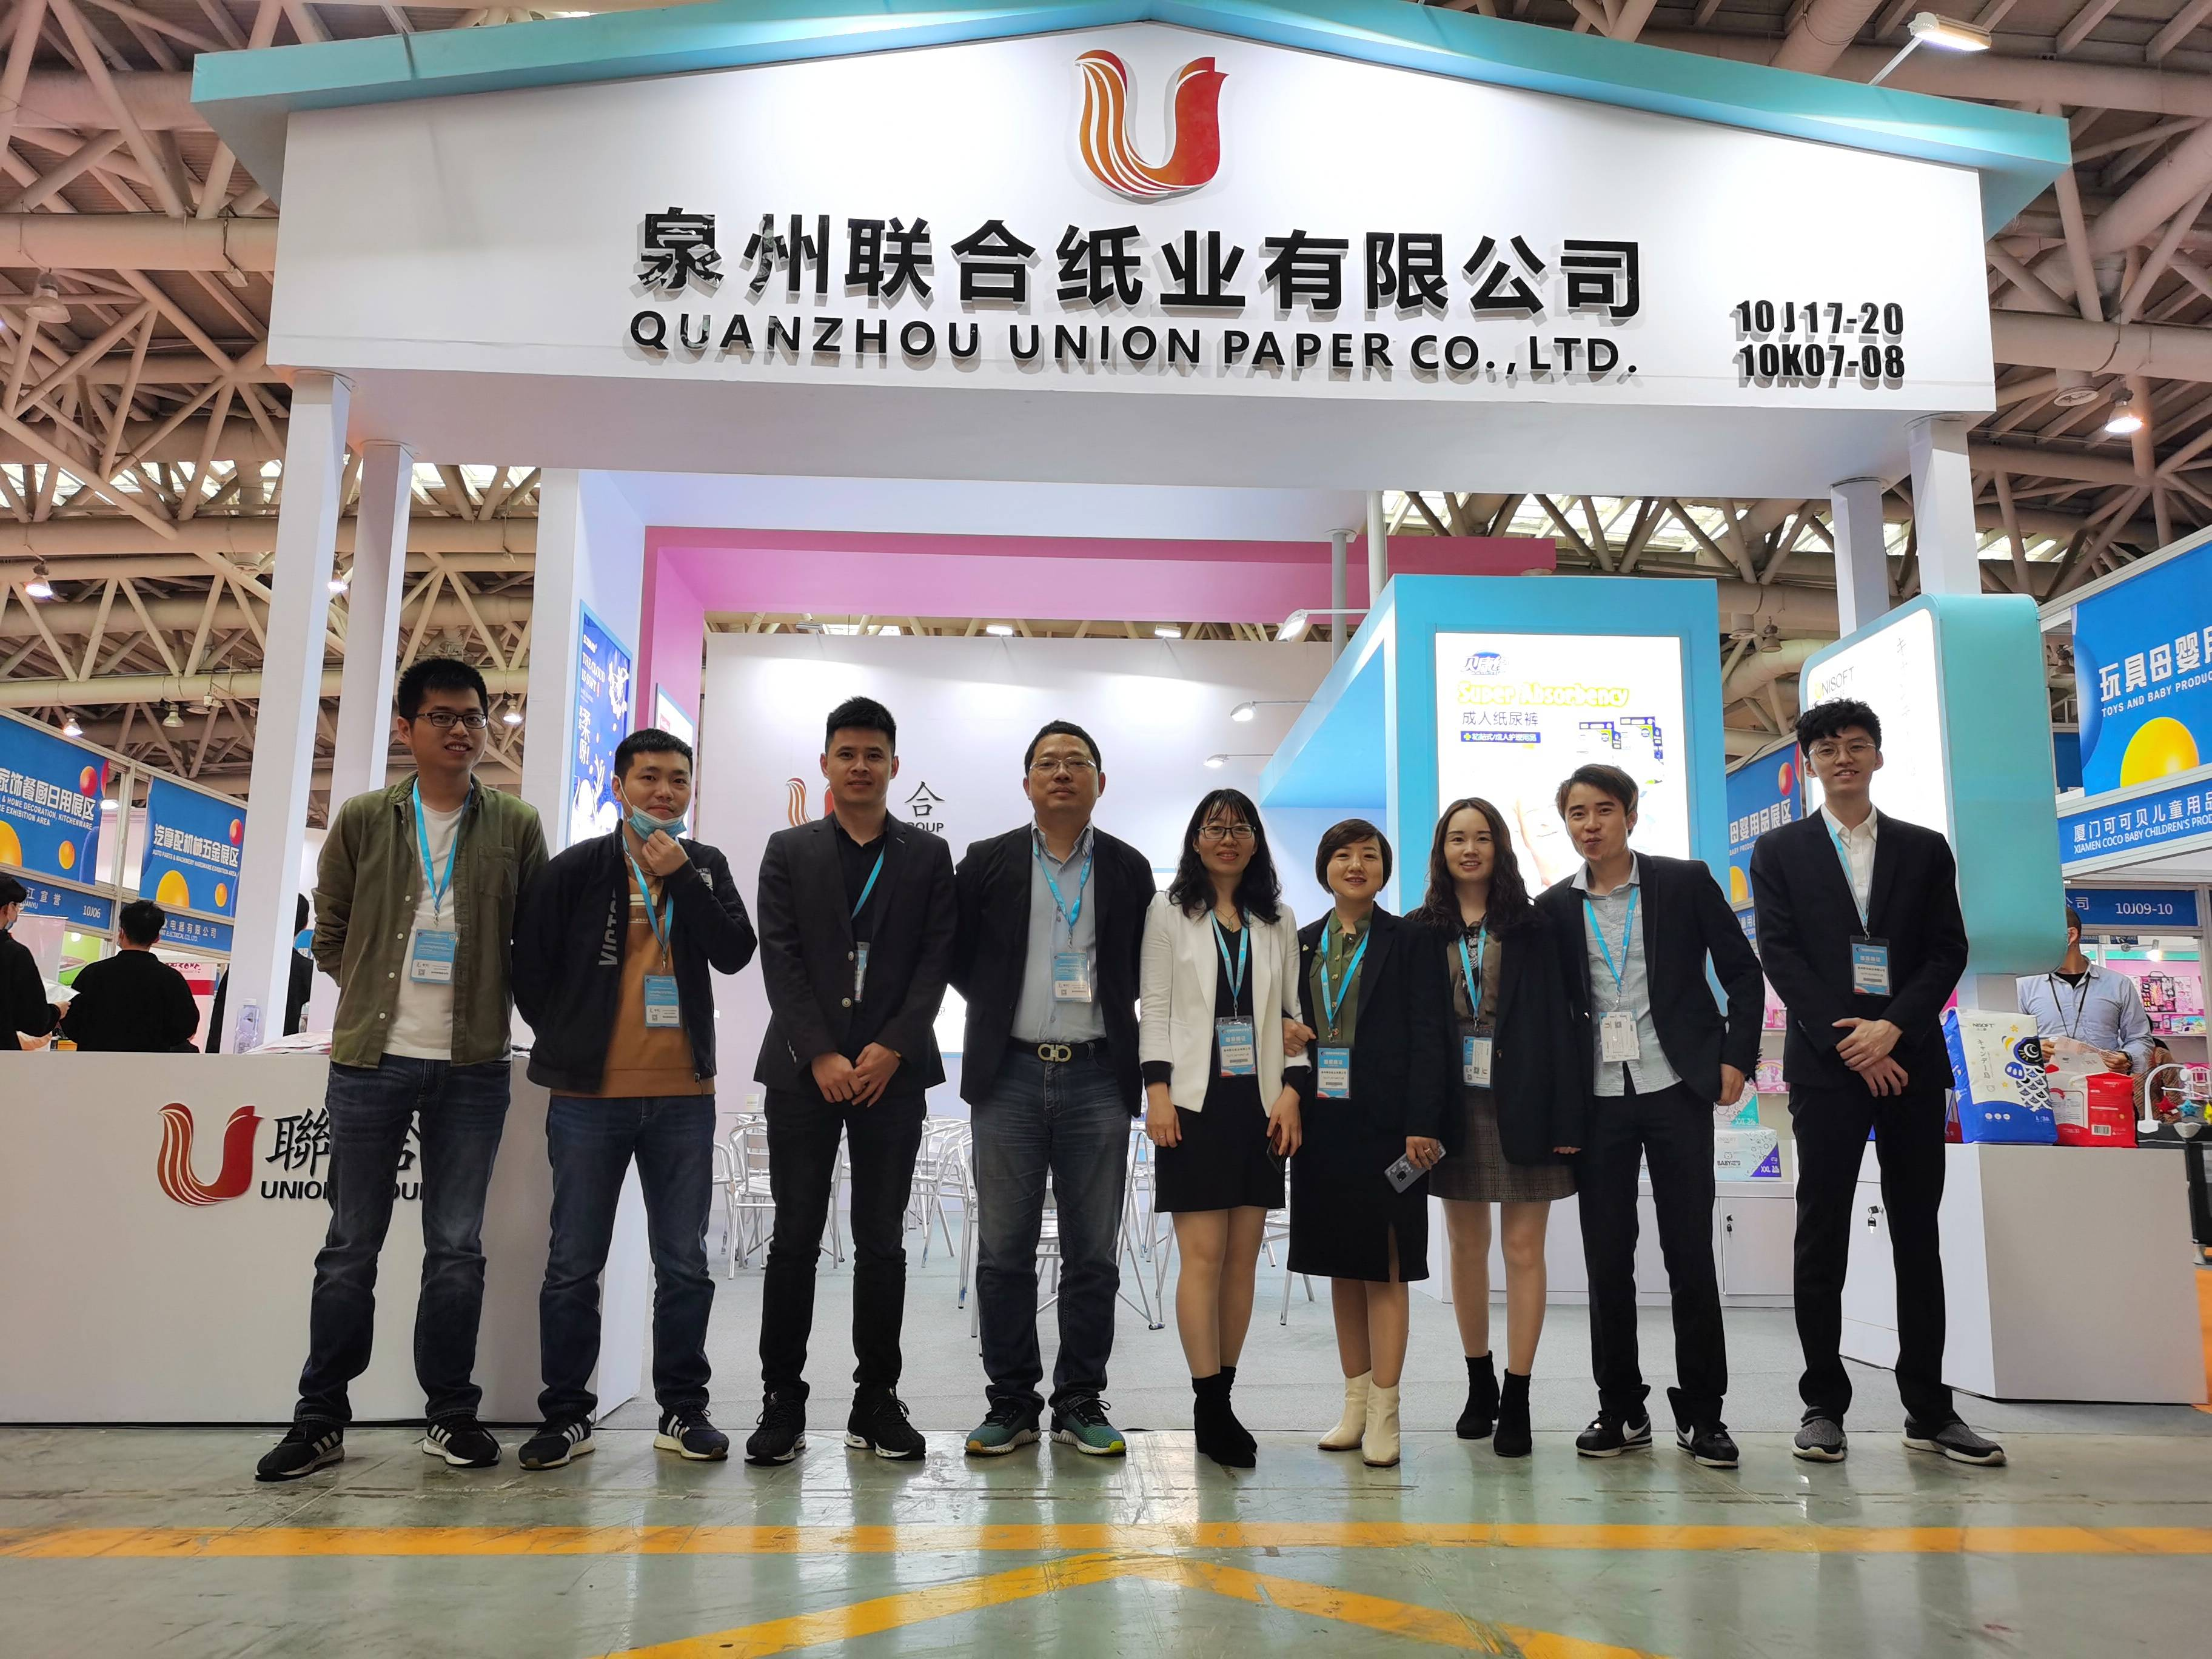 Discover opportunities and achieve a win-win situation in China's cross-border e-commerce trade fairs